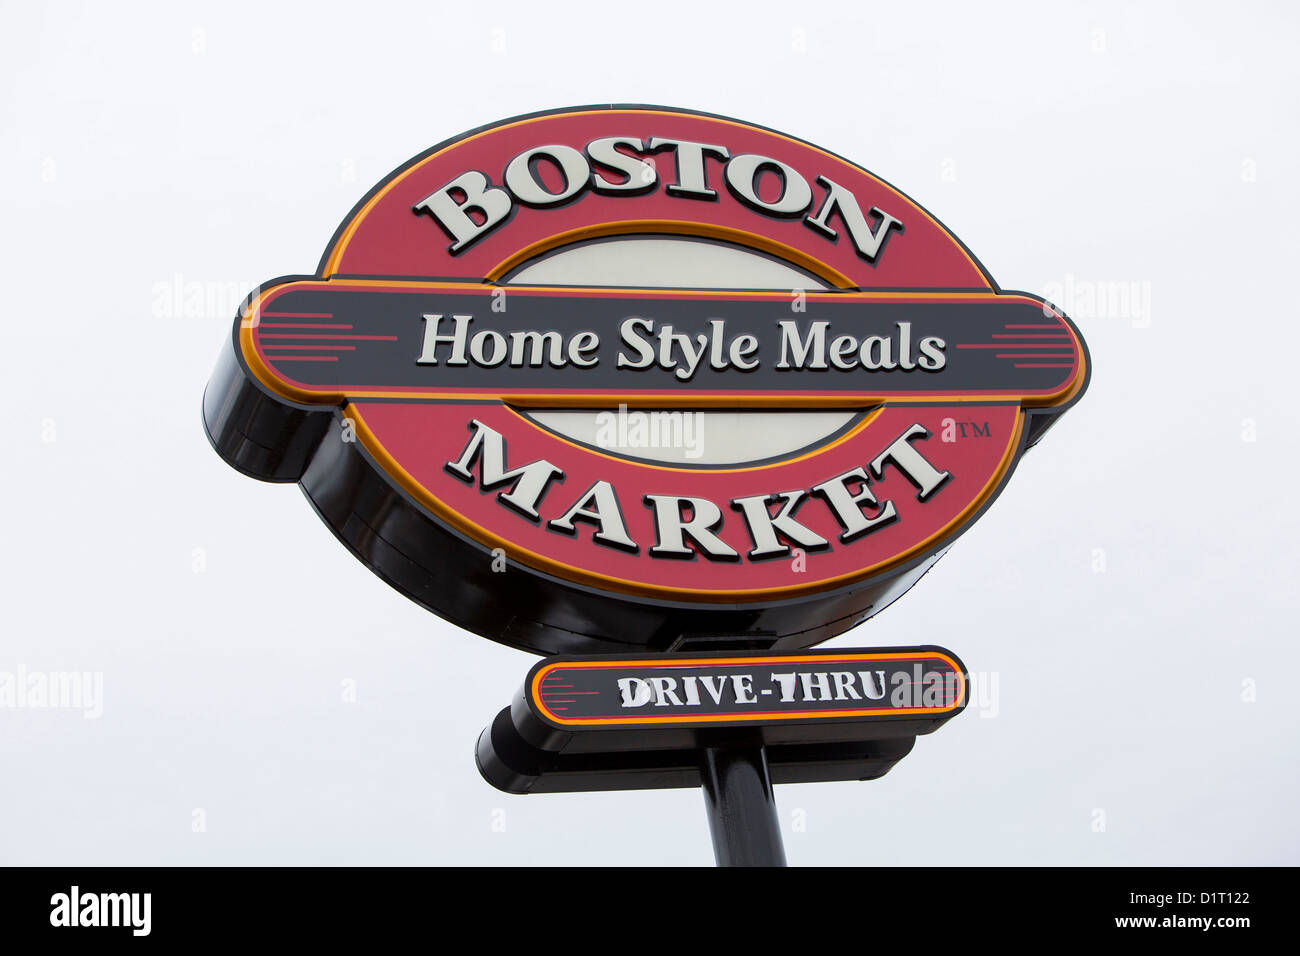 Un mercado de Boston casual restaurante de cadena. Imagen De Stock